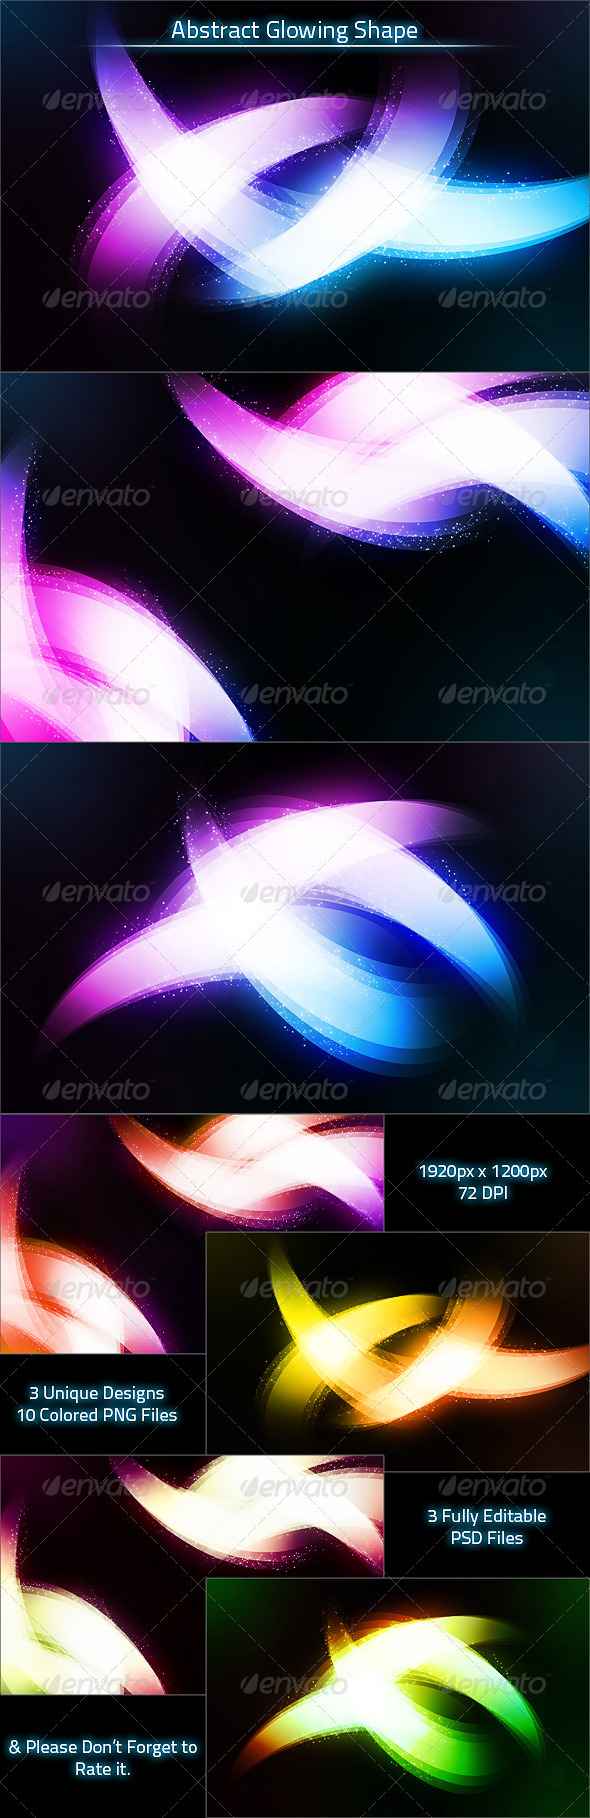 Graphic River Abstract Glowing Shape Background Graphics -  Backgrounds  Abstract 1404264